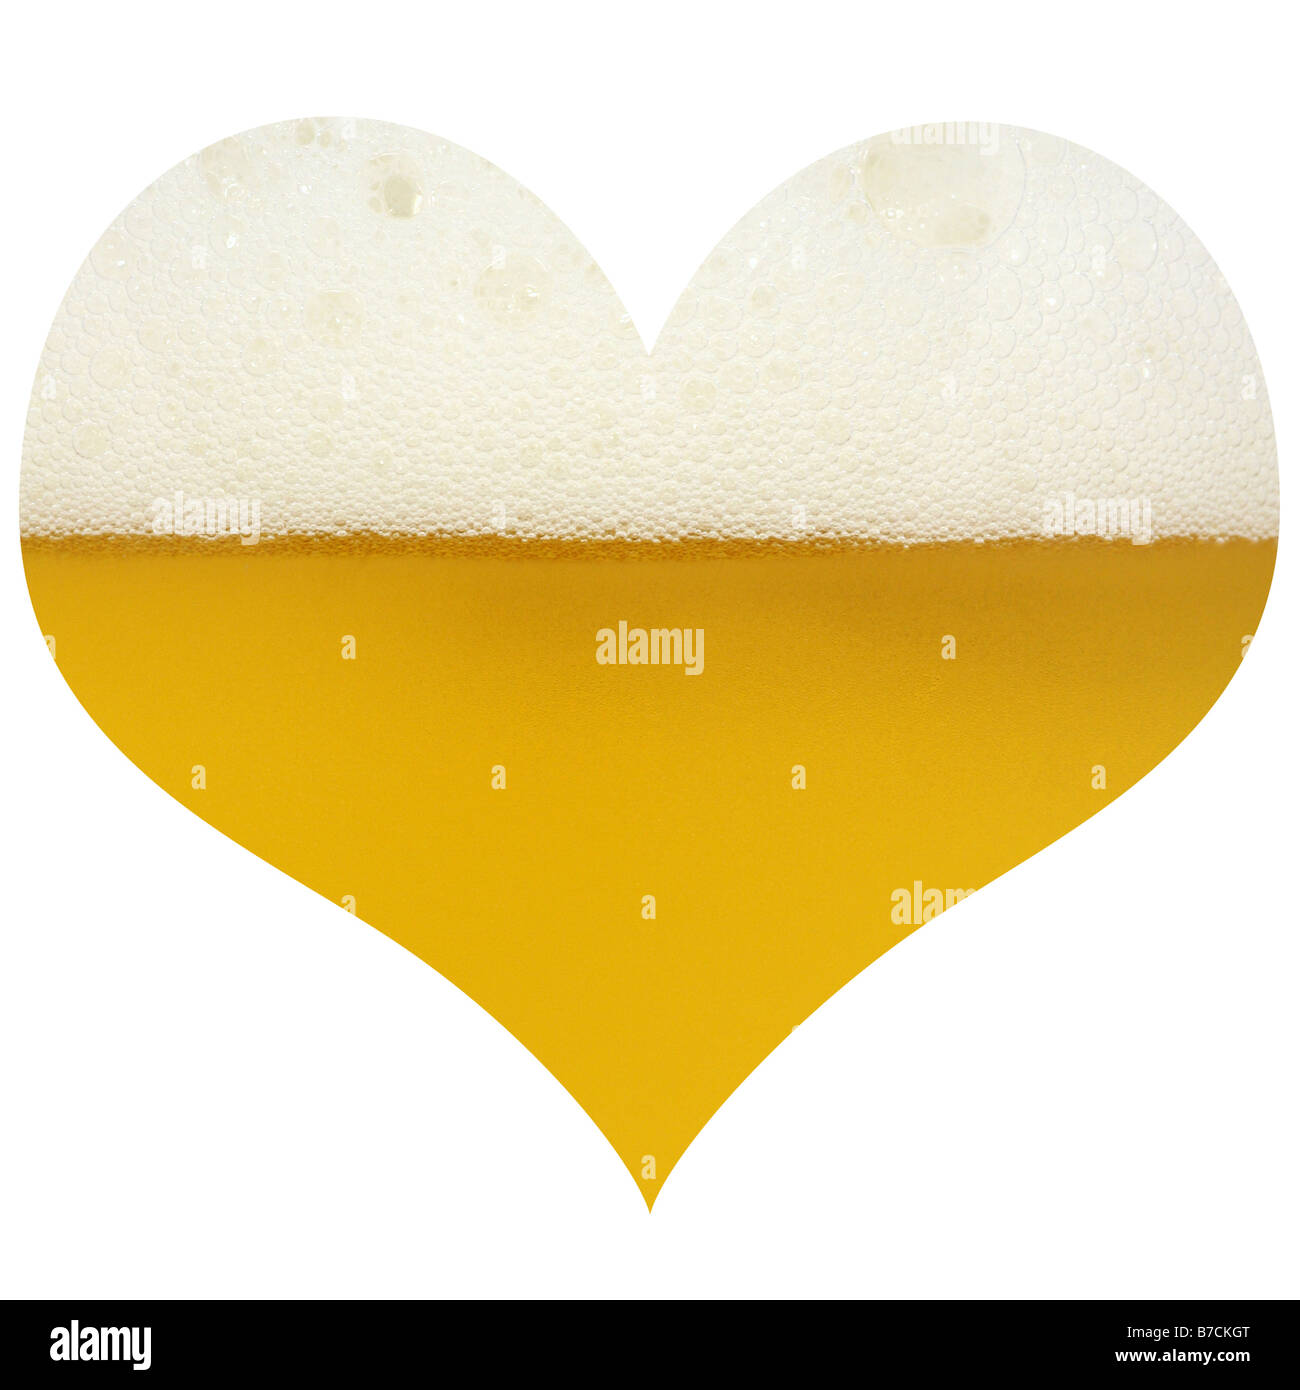 Love for beer - Stock Image